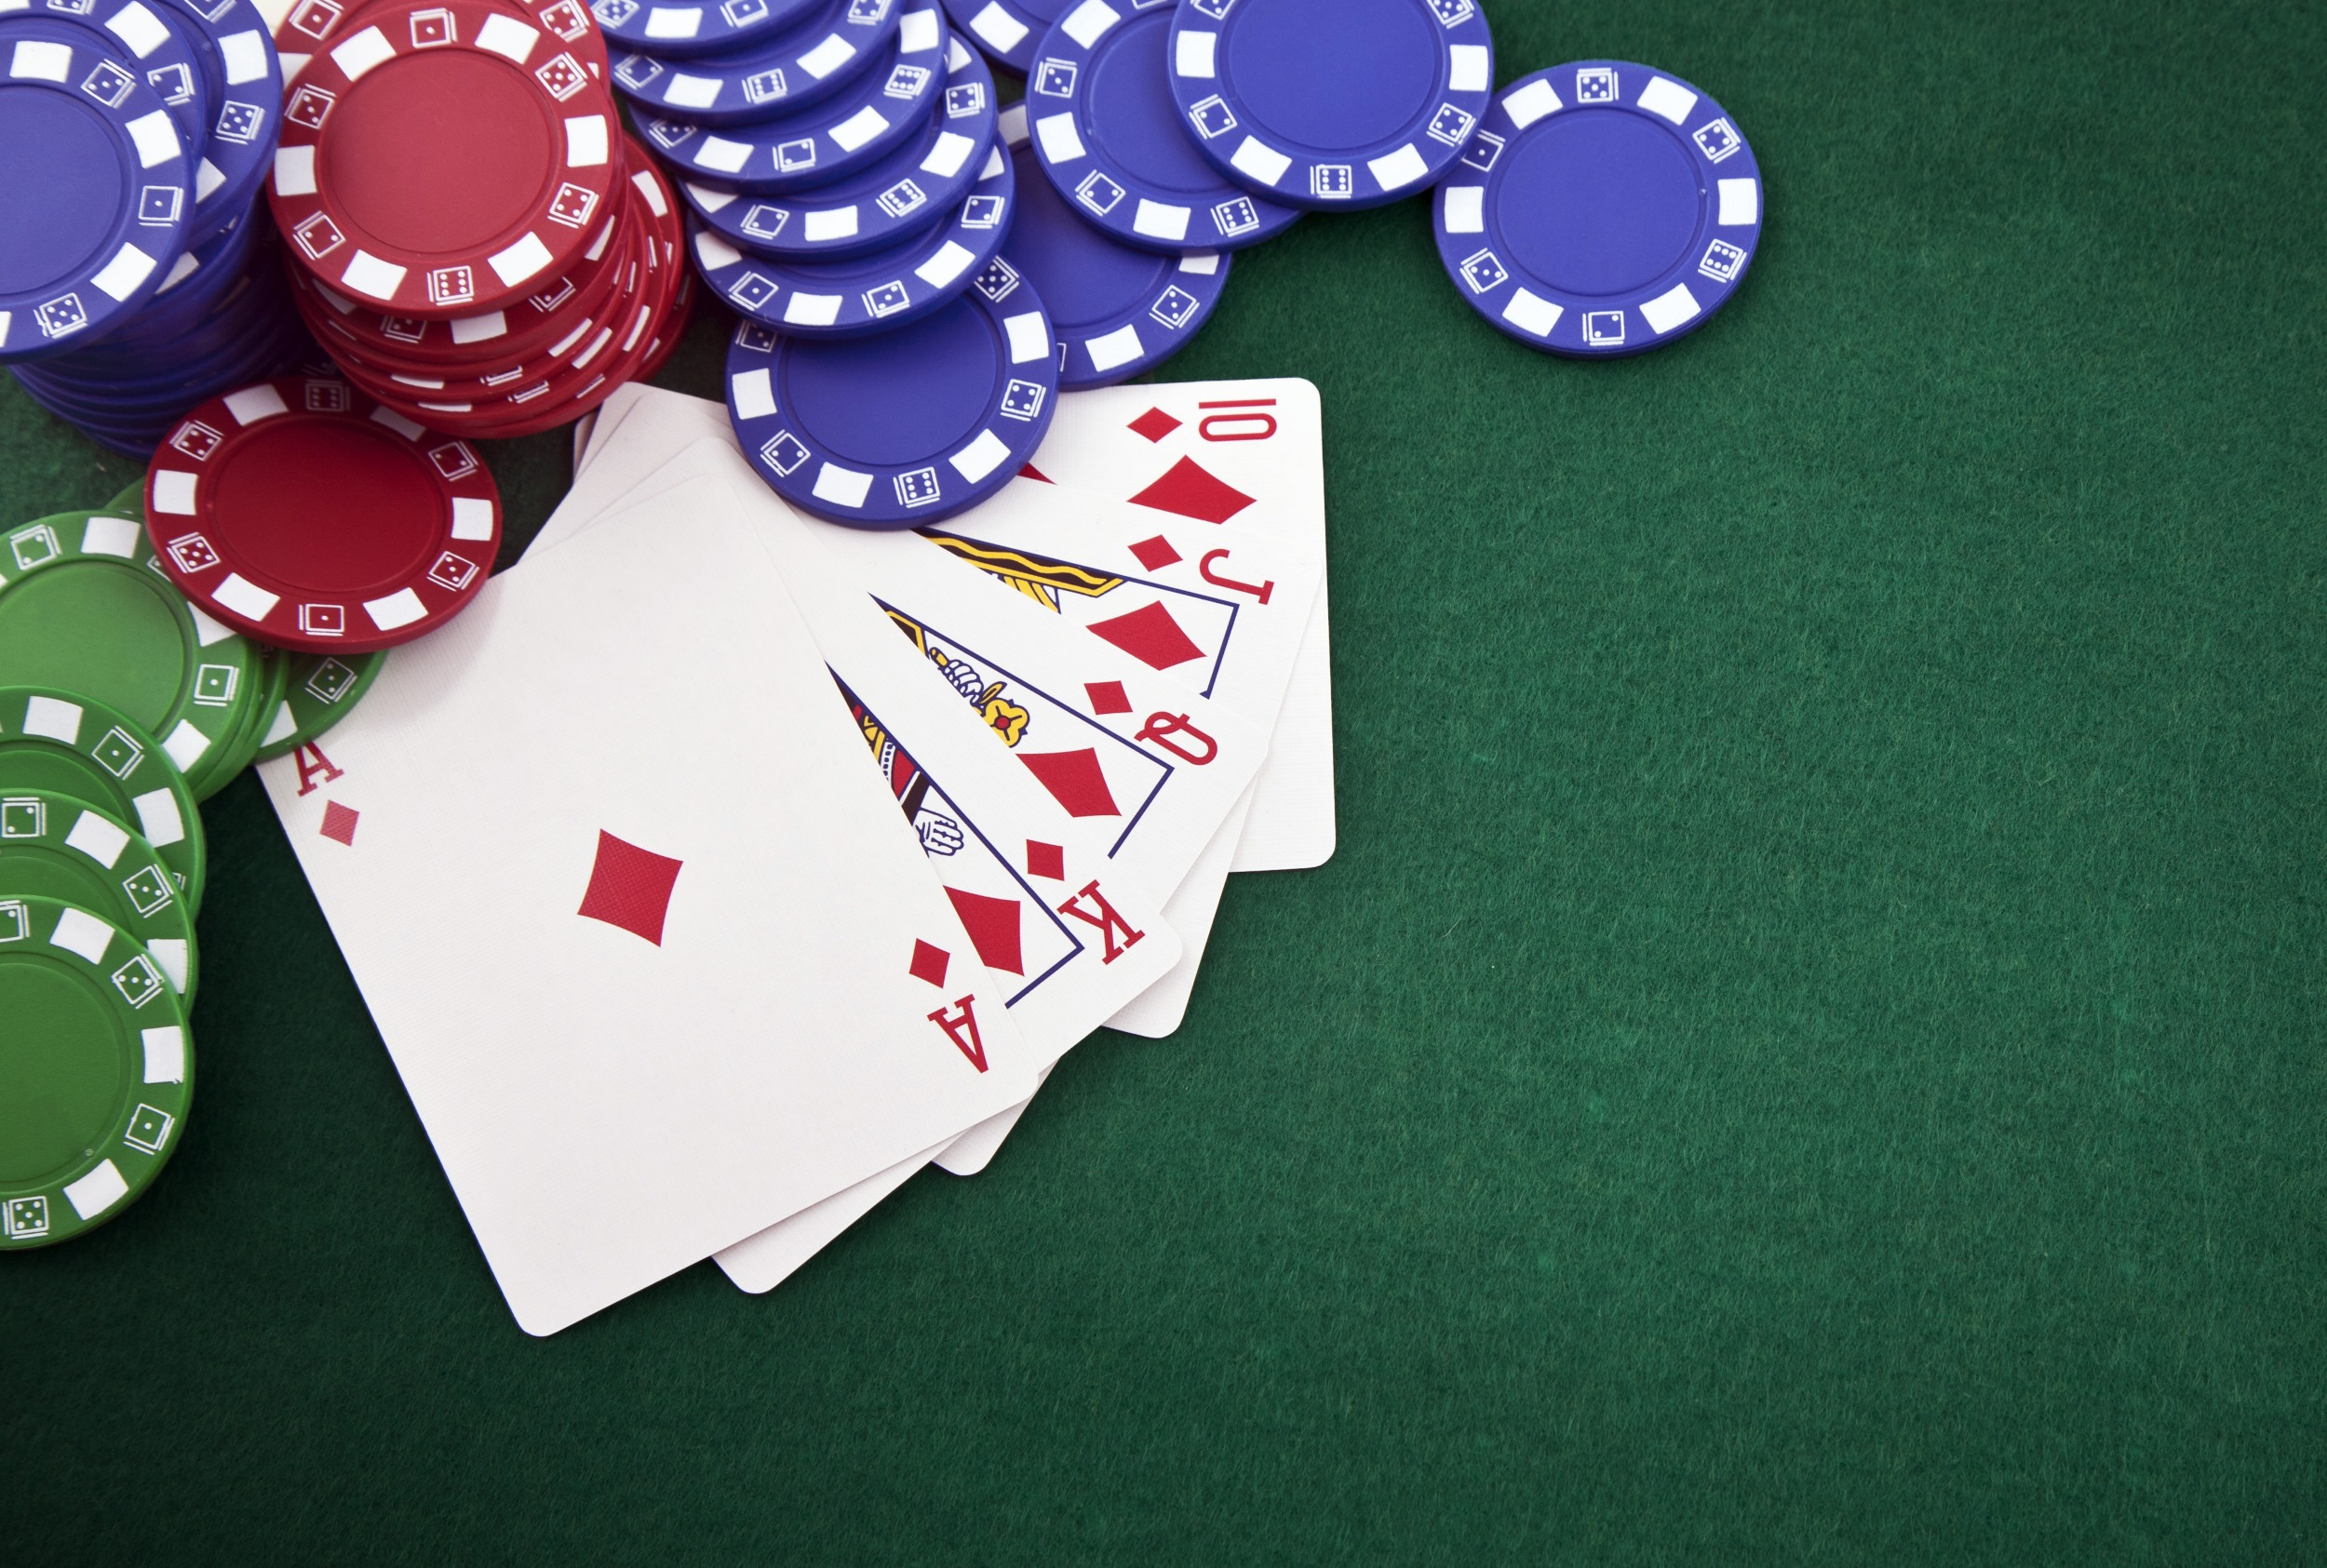 AI smokes 5 poker champs at a time in no-limit Hold'em with 'relentless consistency' | TechCrunch